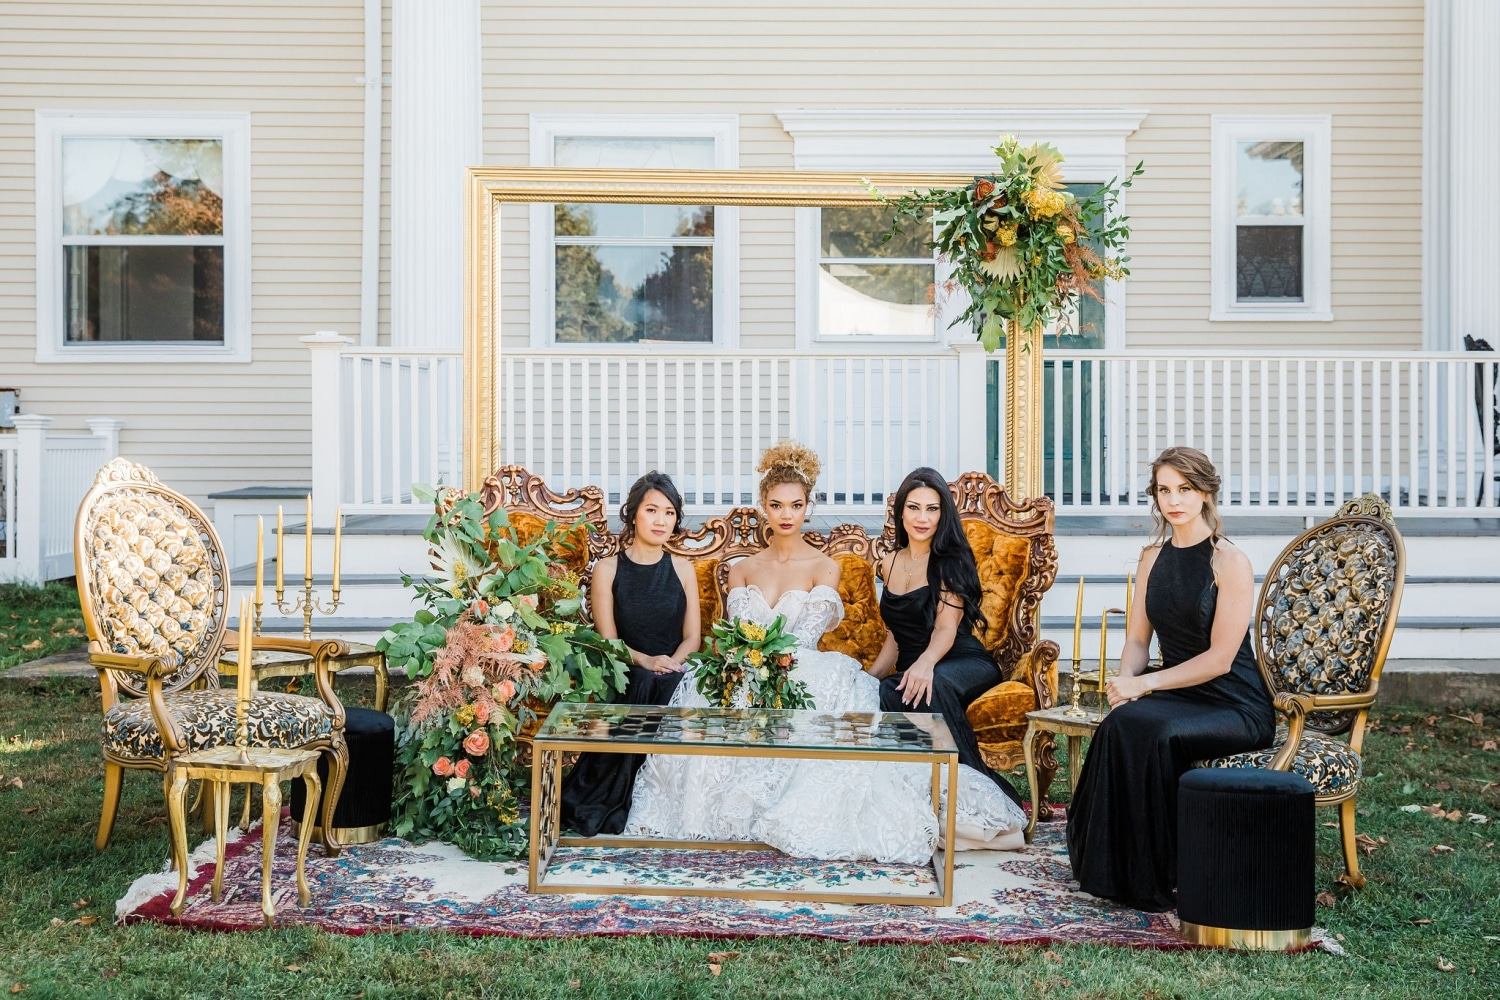 vintage carpet and bright copper colored couch with bride and bridesmaids relaxing with florals all around them